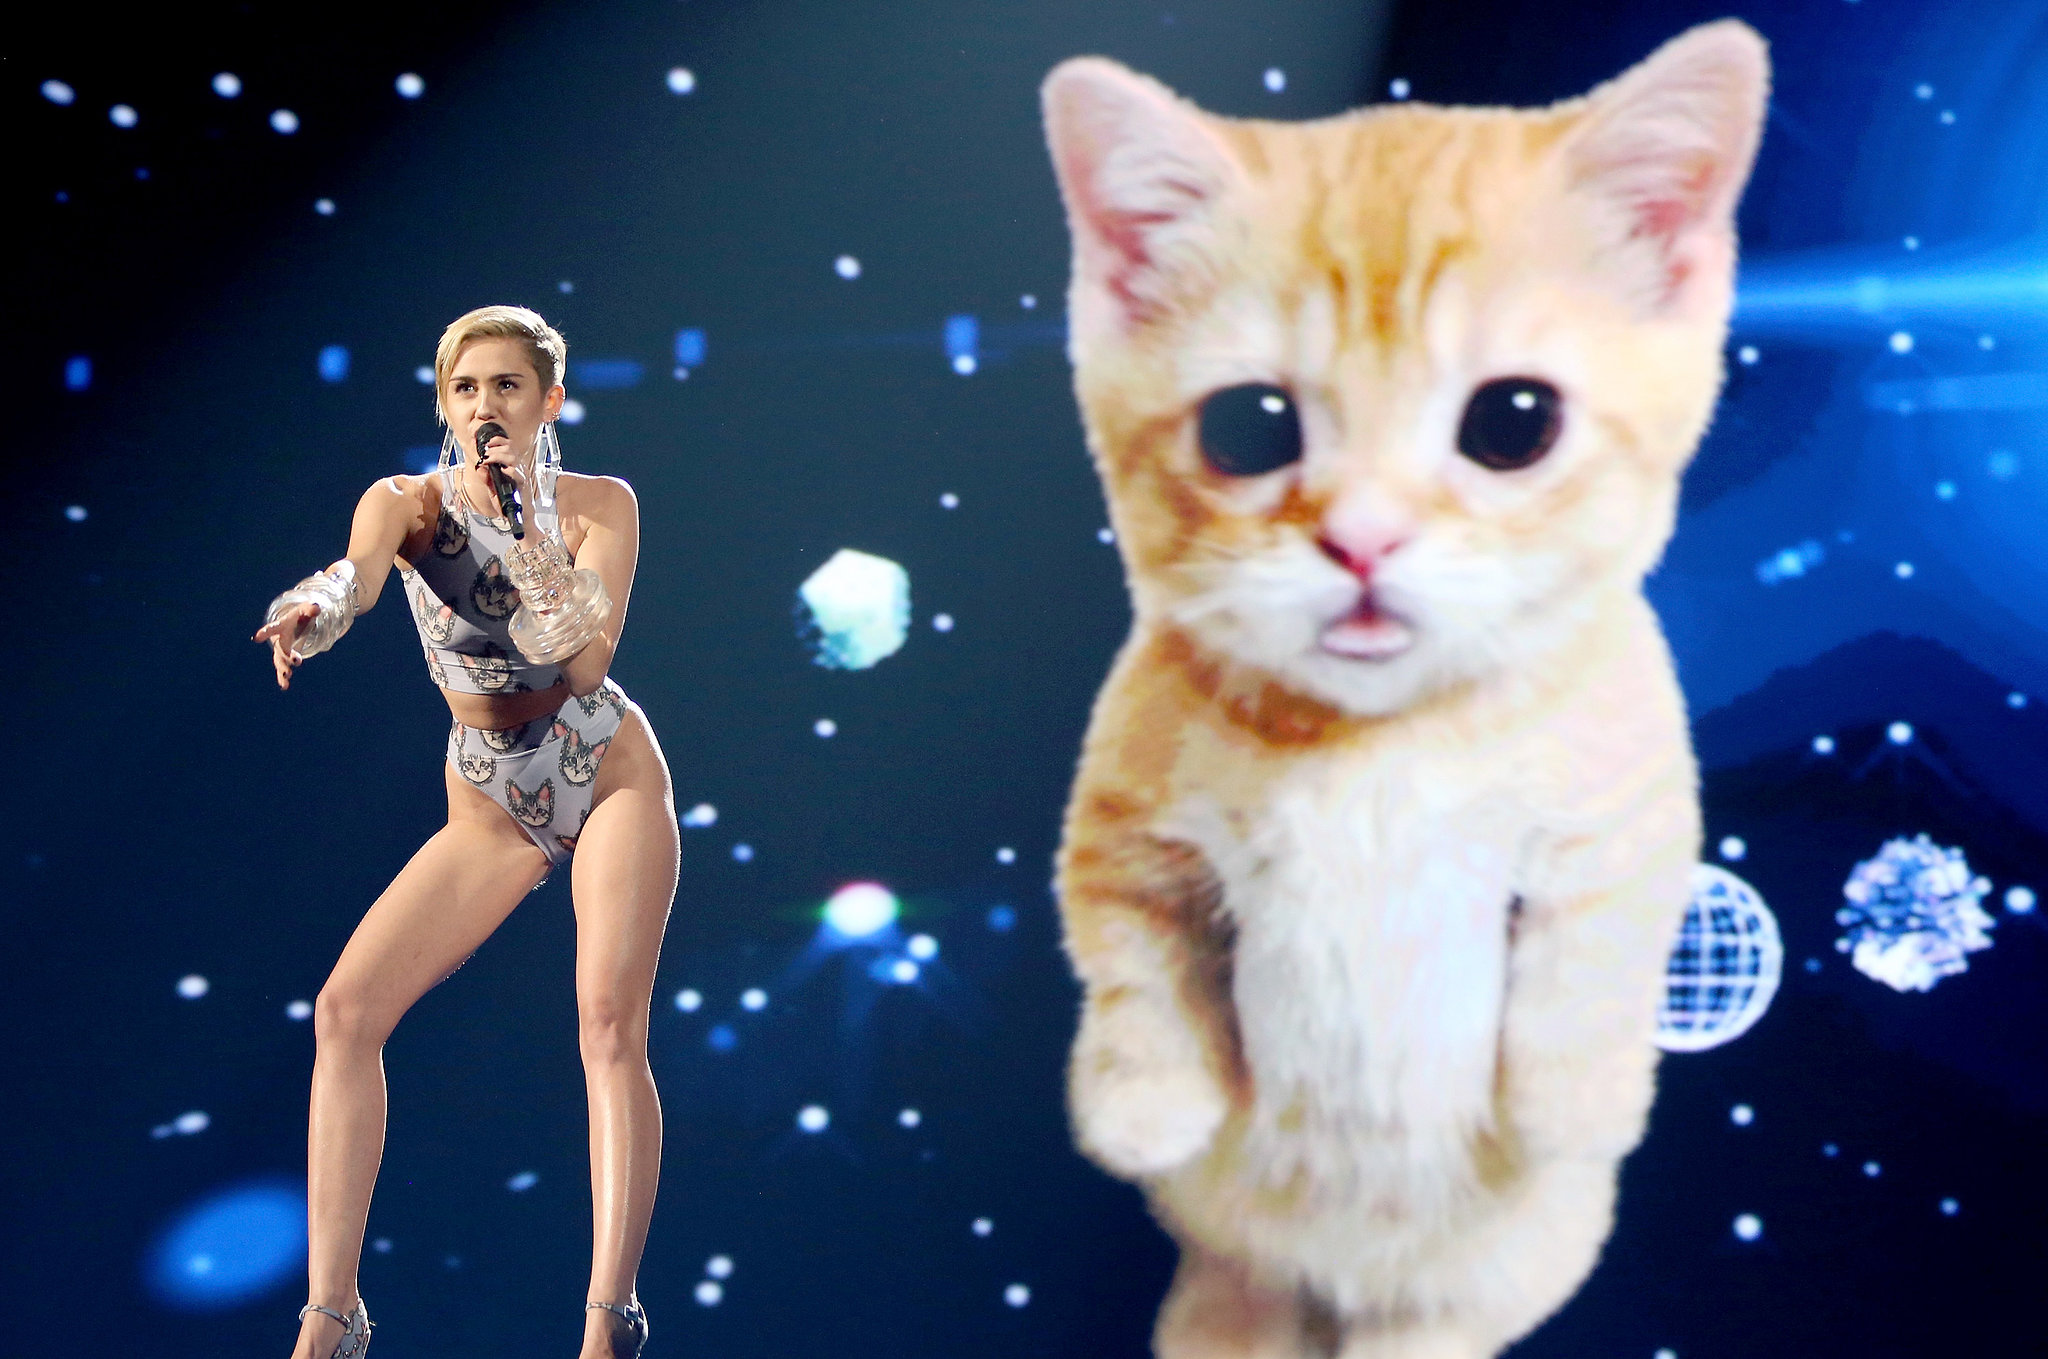 Miley Cyrus managed to top her own antics by performing in front of a giant, lip-syncing digital cat at the AMAs.